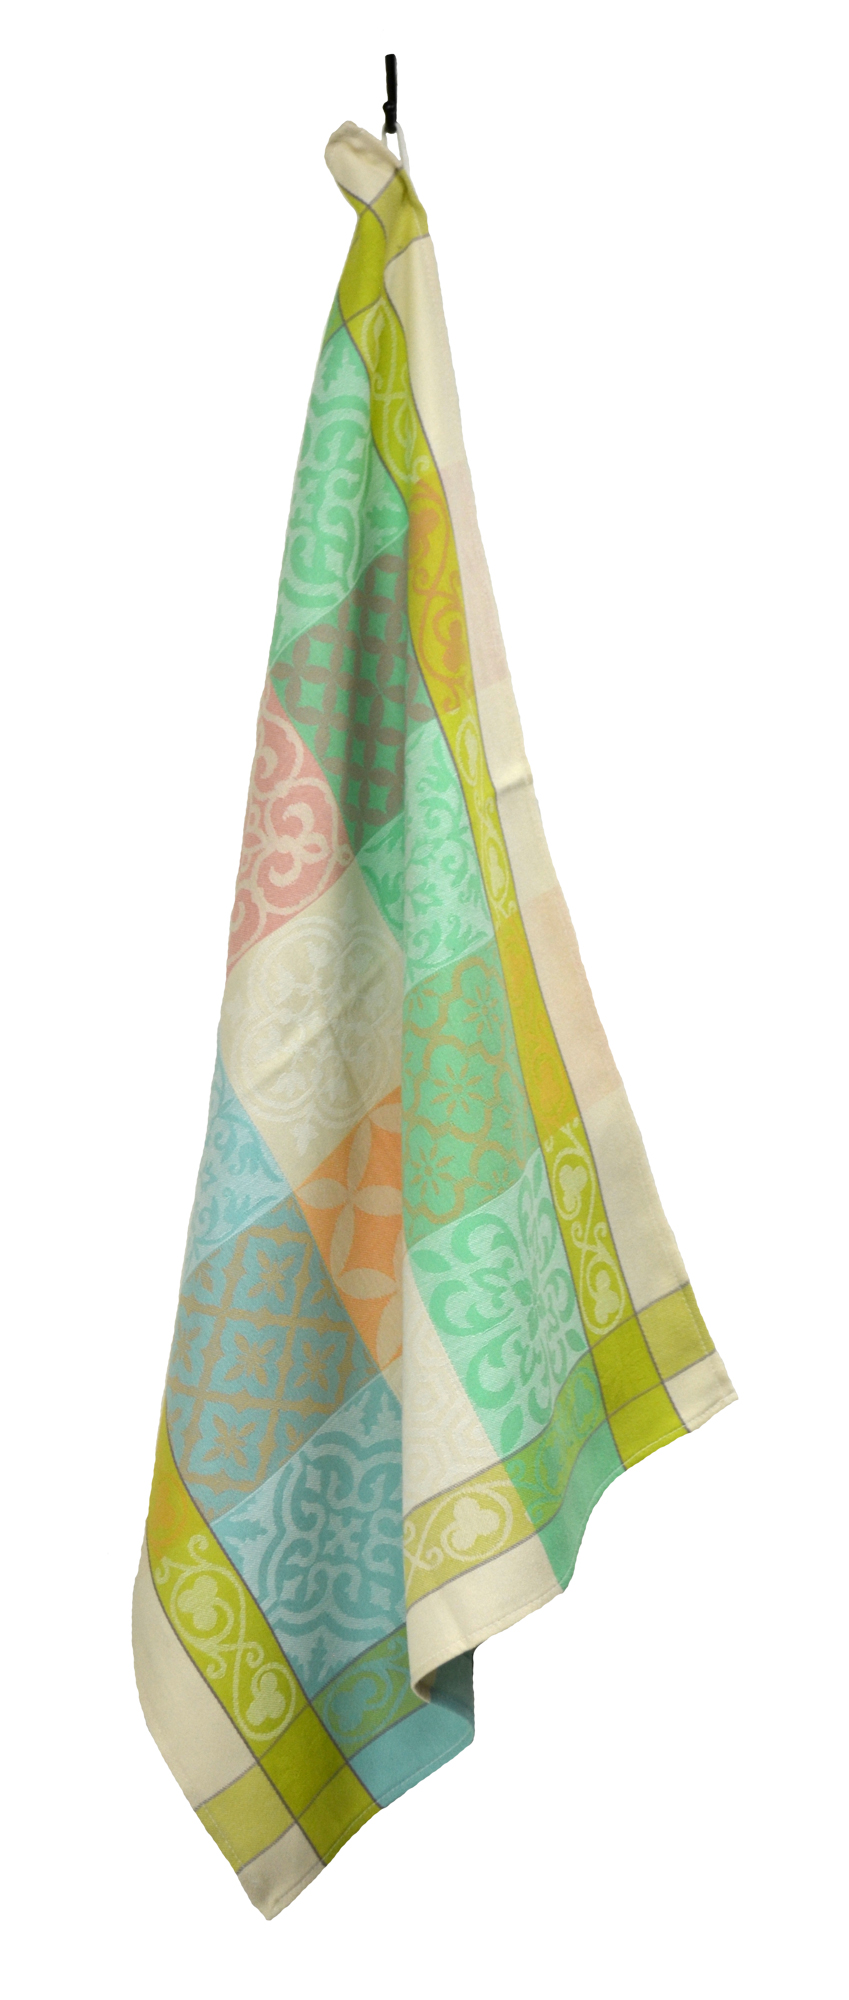 """French Jacquard Tea Towel - Collection """"Reillanne"""" Lime/Cream, Size: 21 x 28 inches, Price CAN$19.95"""